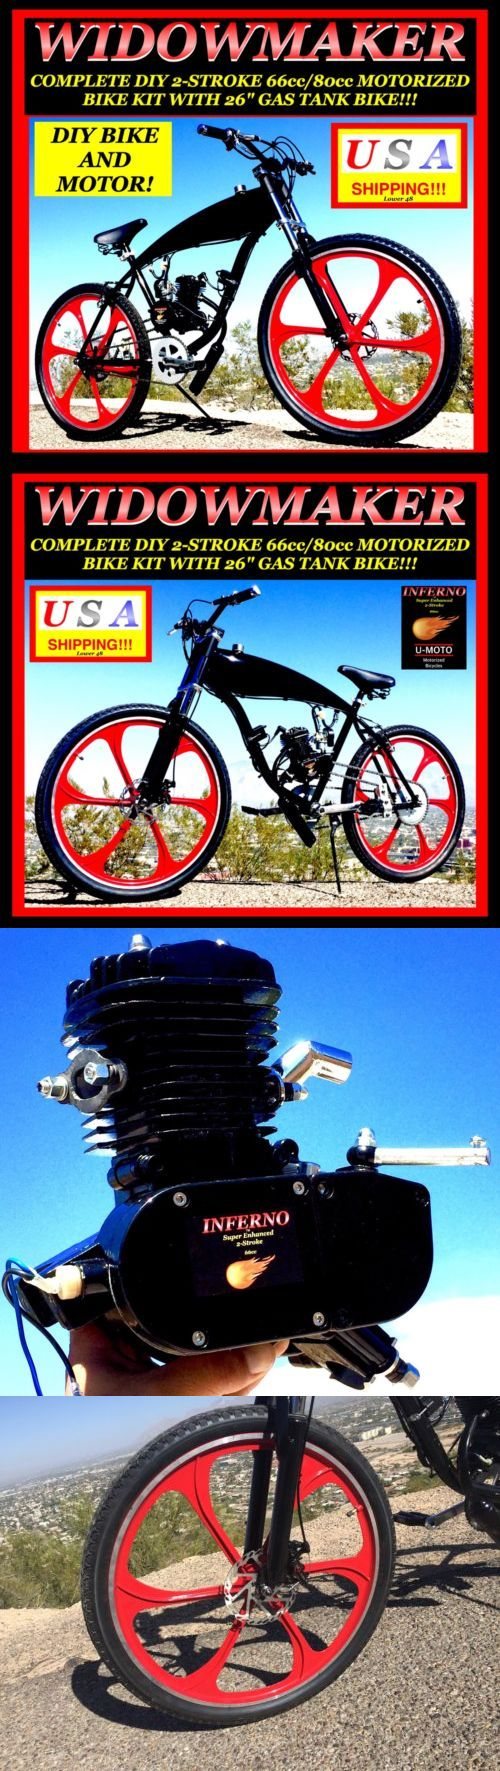 Gas Scooters 75211: Complete Diy 2-Stroke 66Cc 80Cc Motorized Bicycle Kit With 29 Gas Tank Bike! -> BUY IT NOW ONLY: $699.99 on eBay!